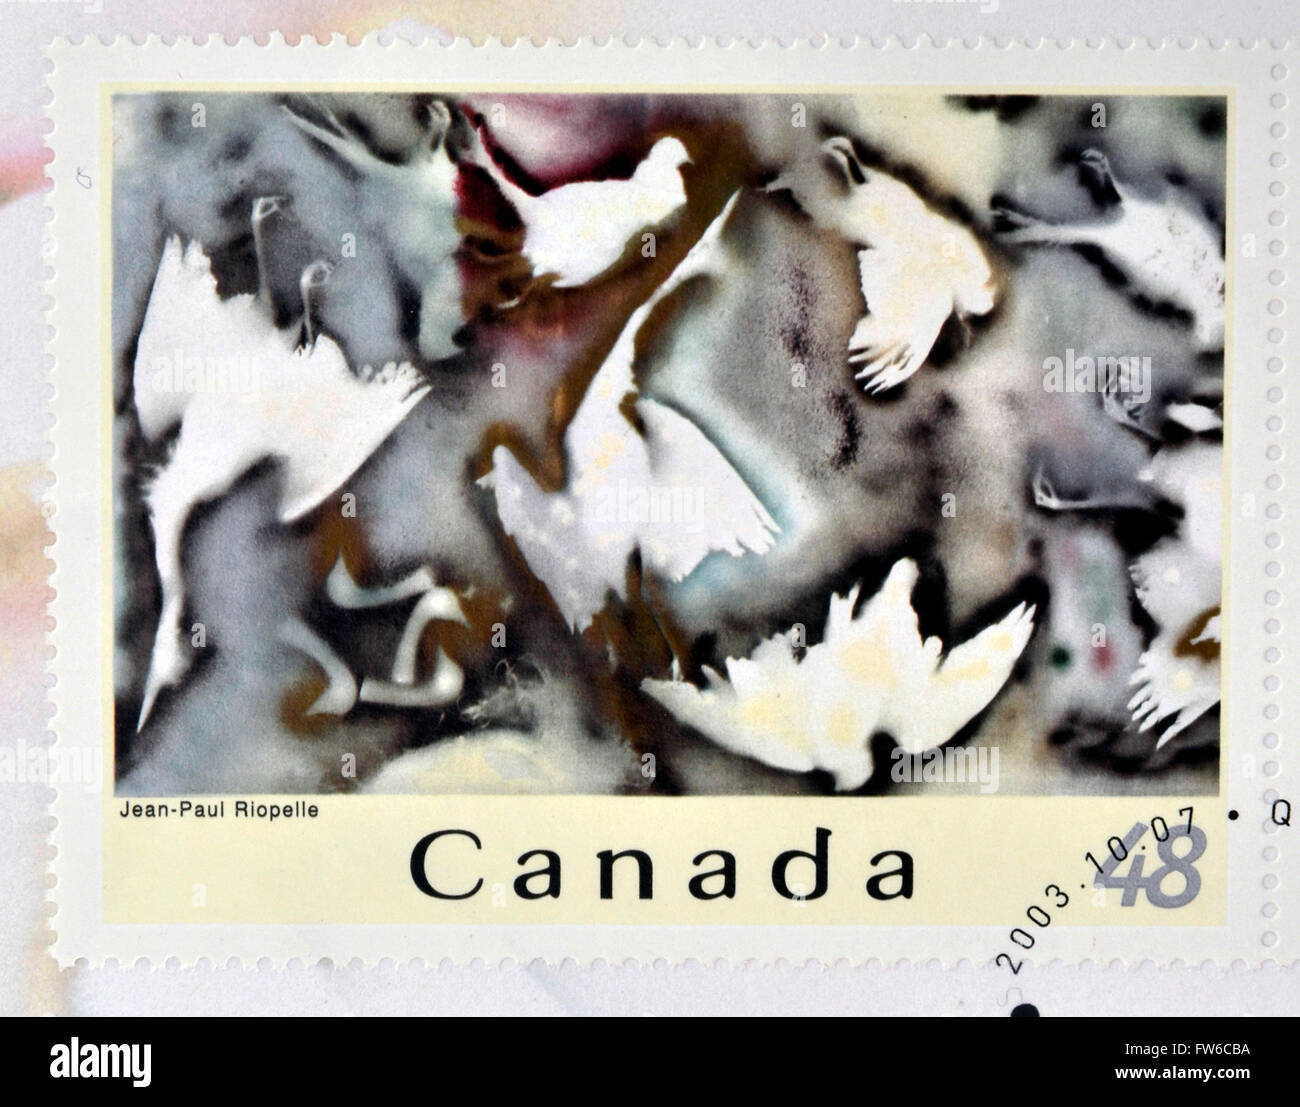 CANADA - CIRCA 2003: A stamp printed in Canada shows an abstract work of Jean Paul Riopelle, circa 2003 - Stock Image